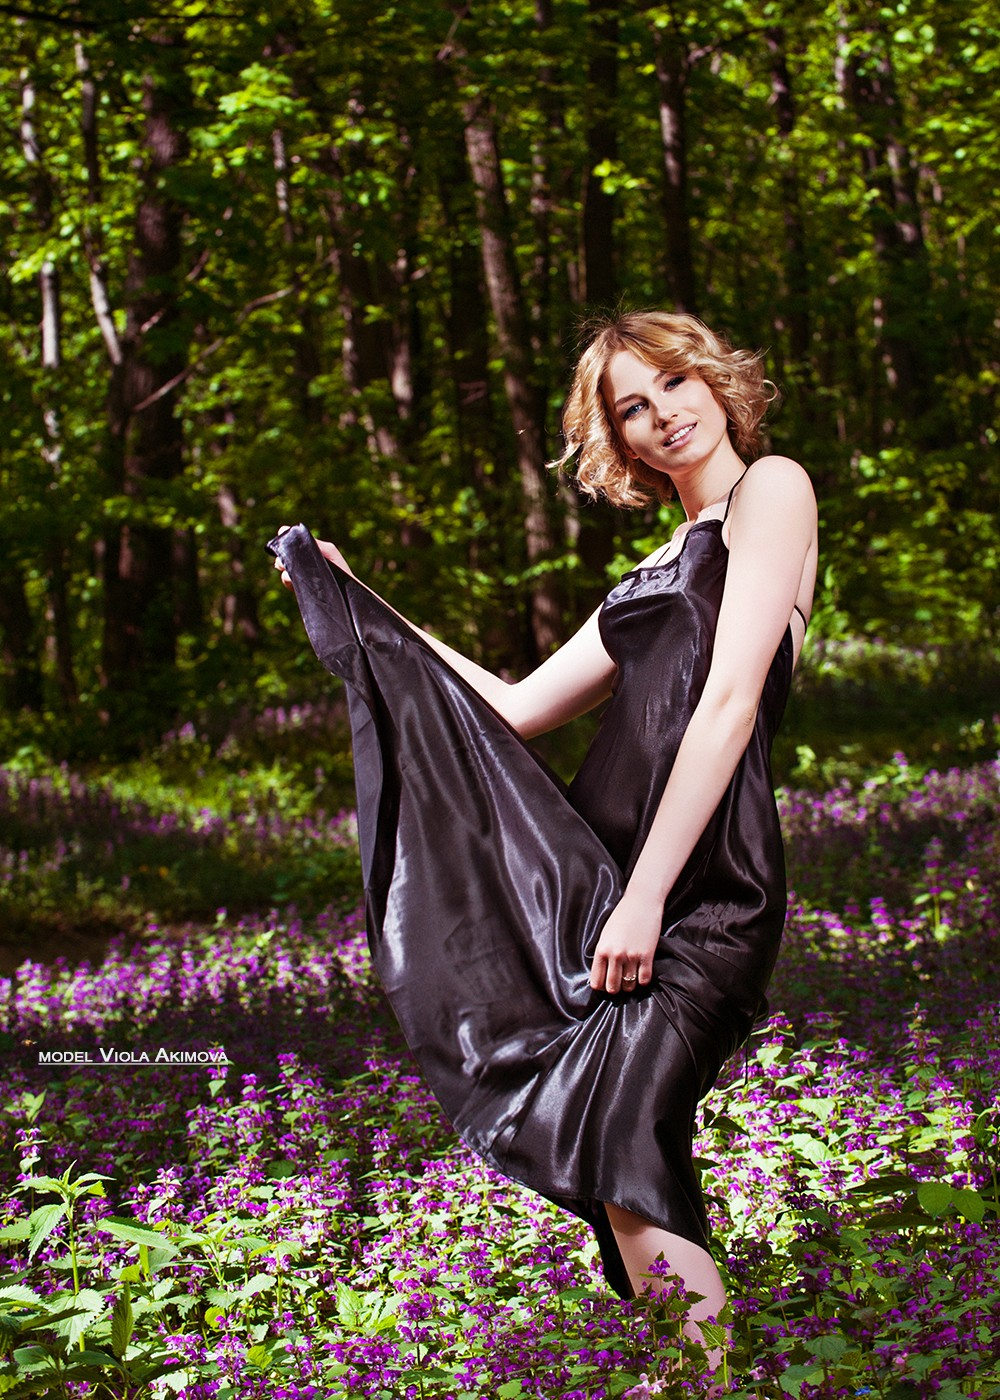 VIOLA in the forest